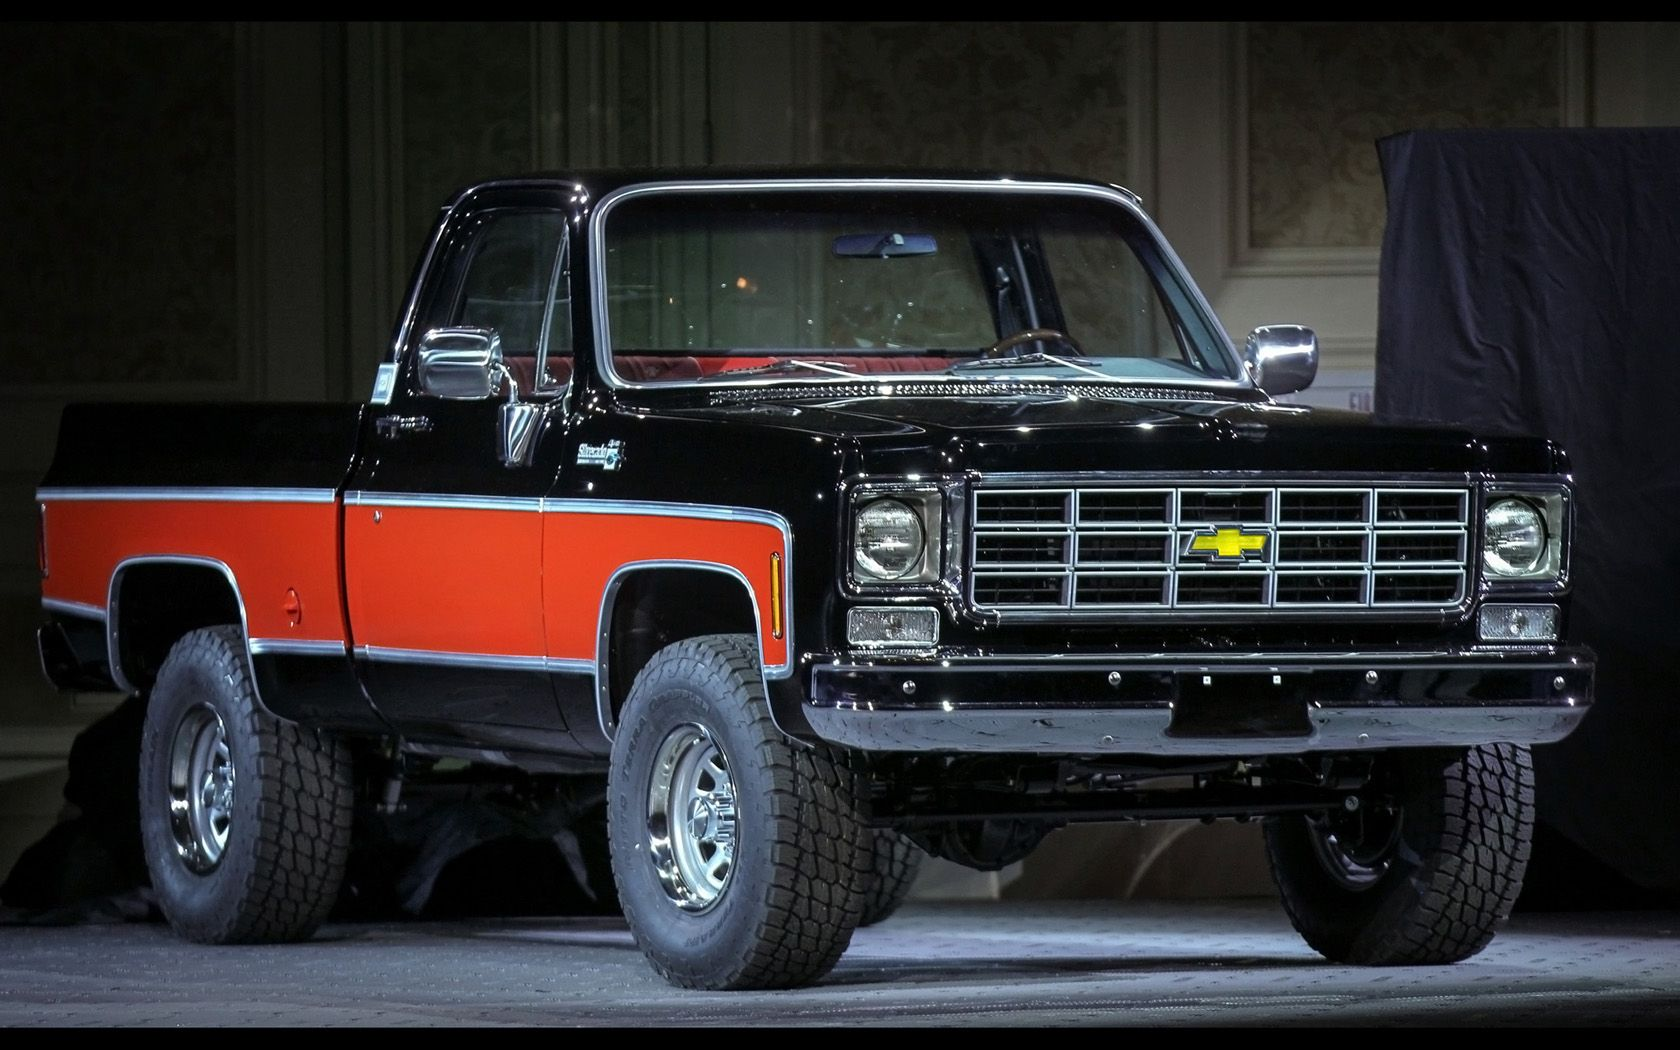 Chevrolet Truck Wallpaper Full Hd Ydj With Images Chevy